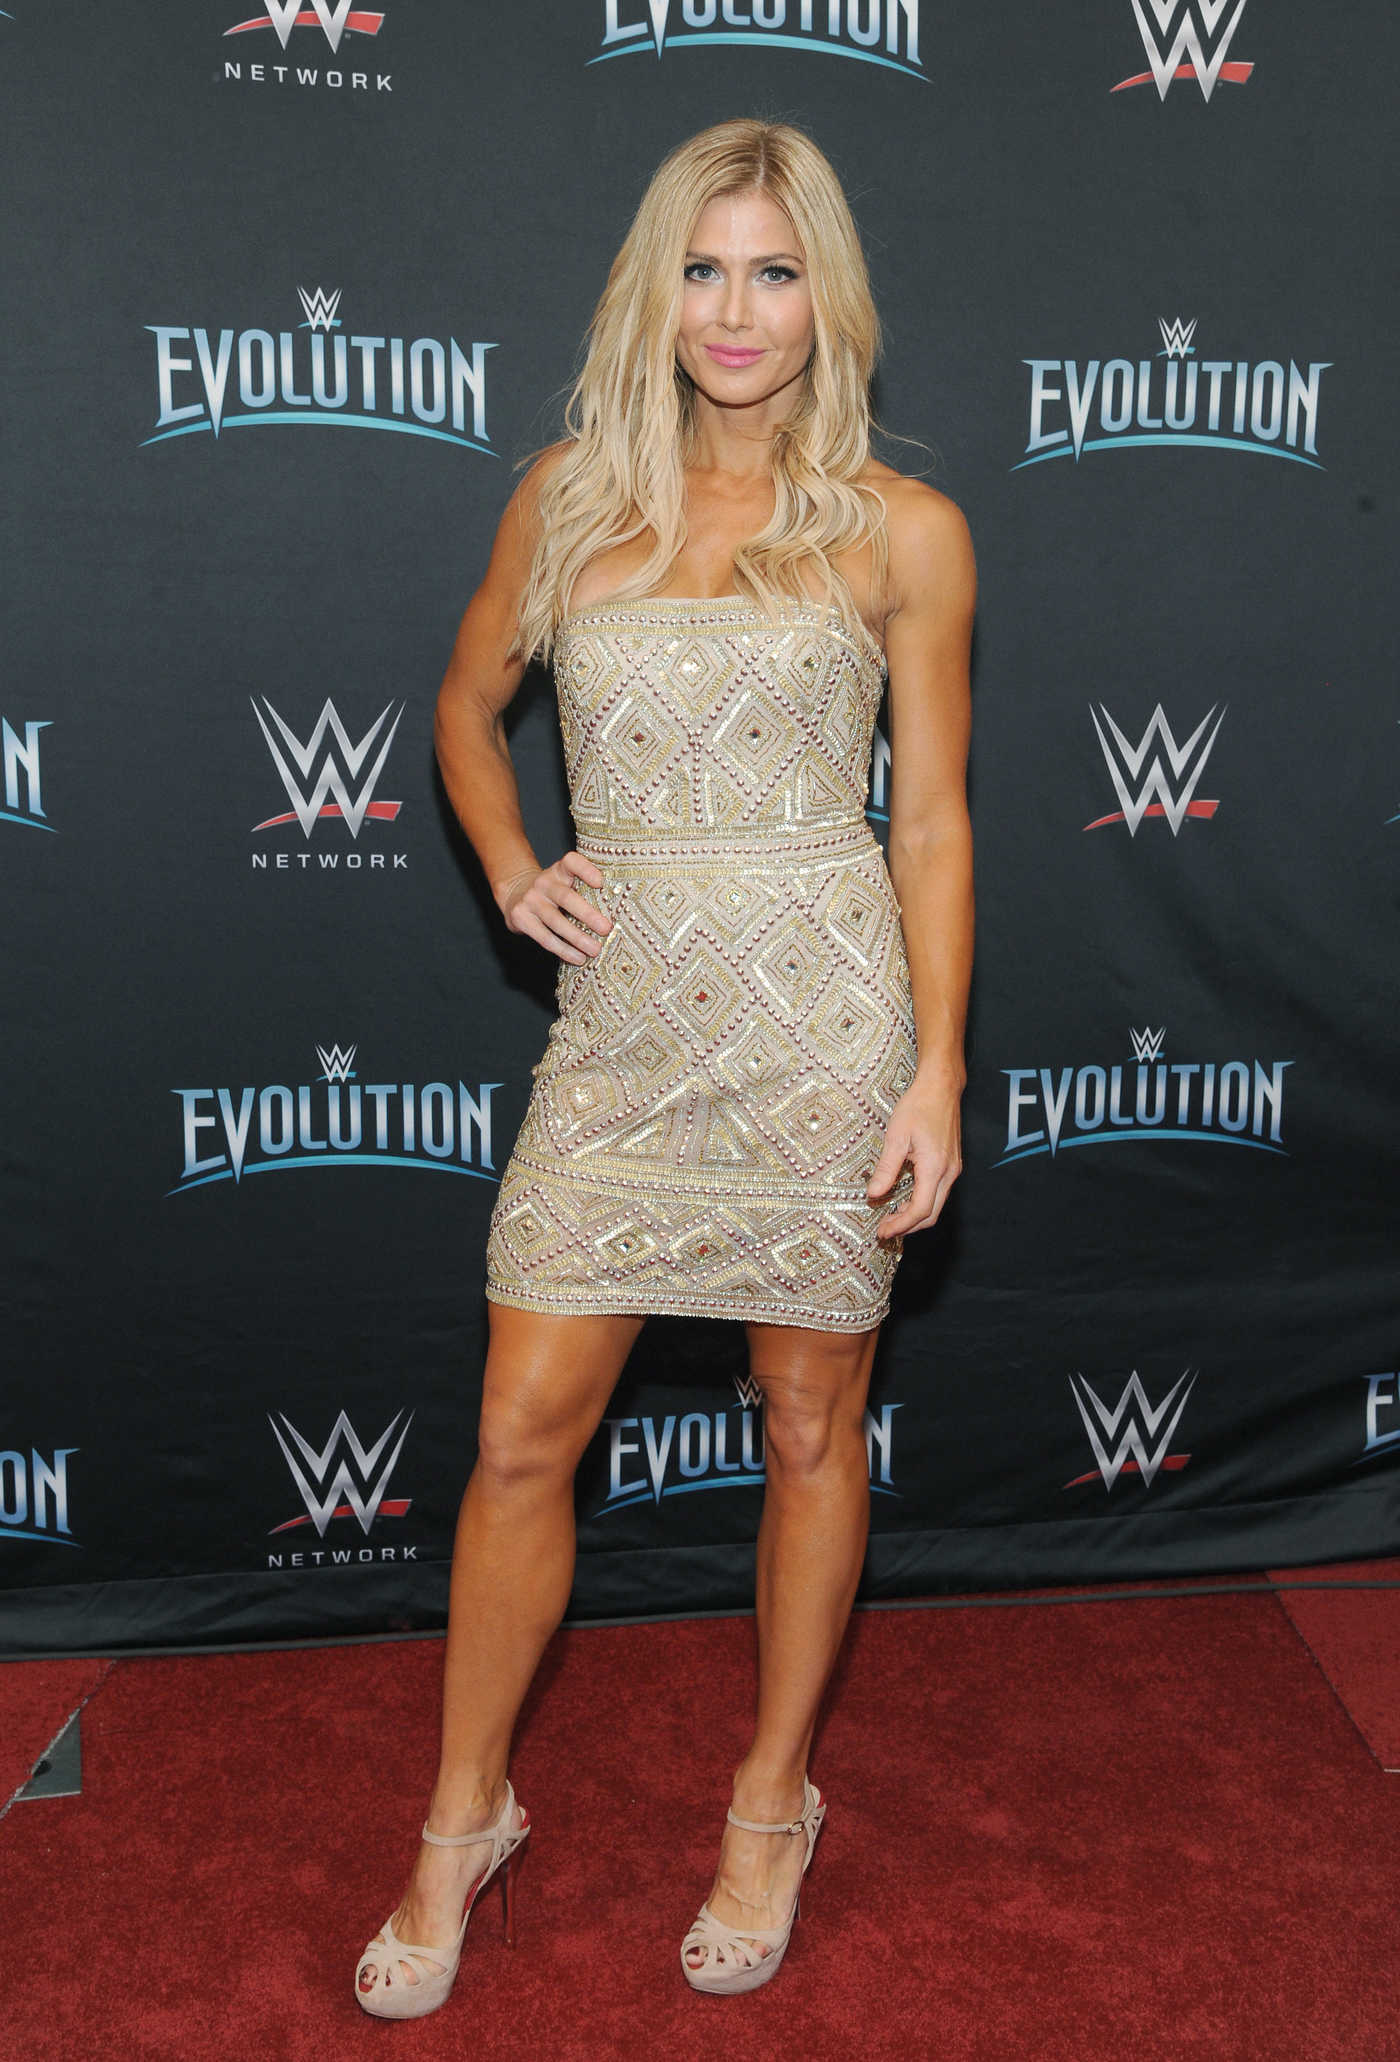 Torrie Wilson Attends WWE's First Ever All-Women's Event Evolution Red Carpet at the Nassau Veteran's Memorial Coliseum in Uniondale 10/28/2018